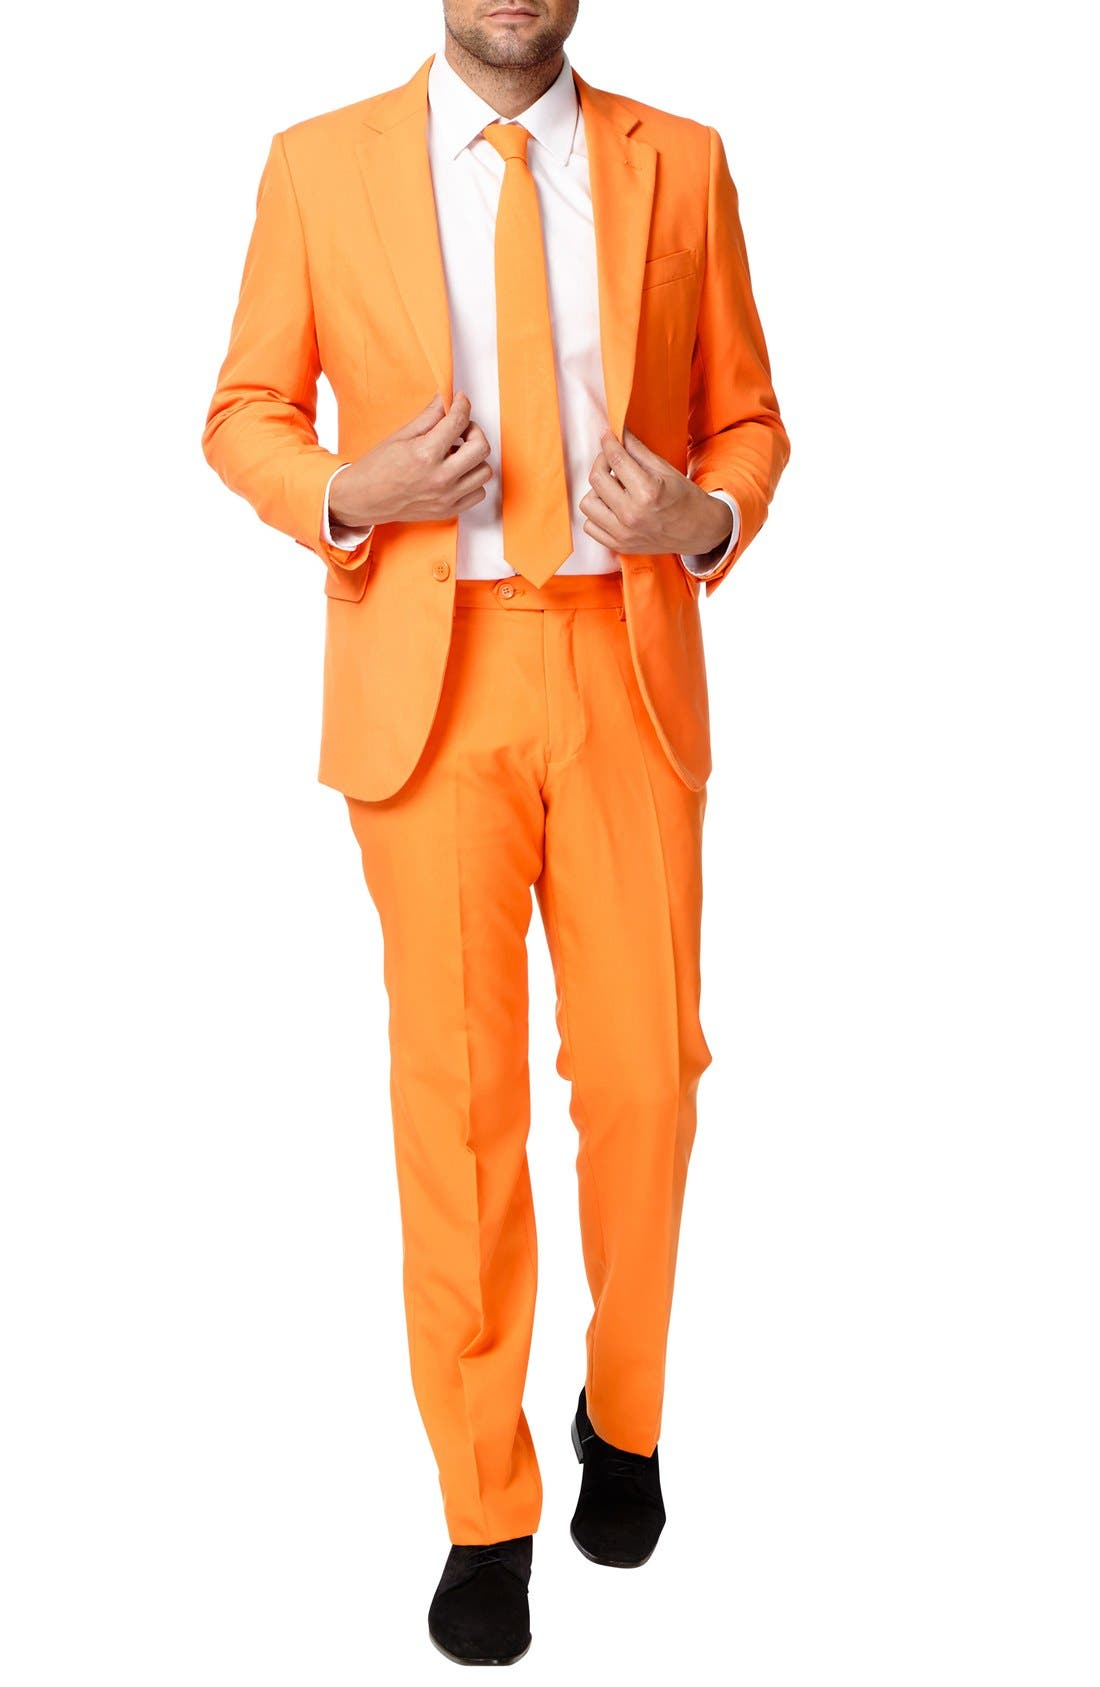 Main Image - OppoSuits 'The Orange' Trim Fit Two-Piece Suit with Tie